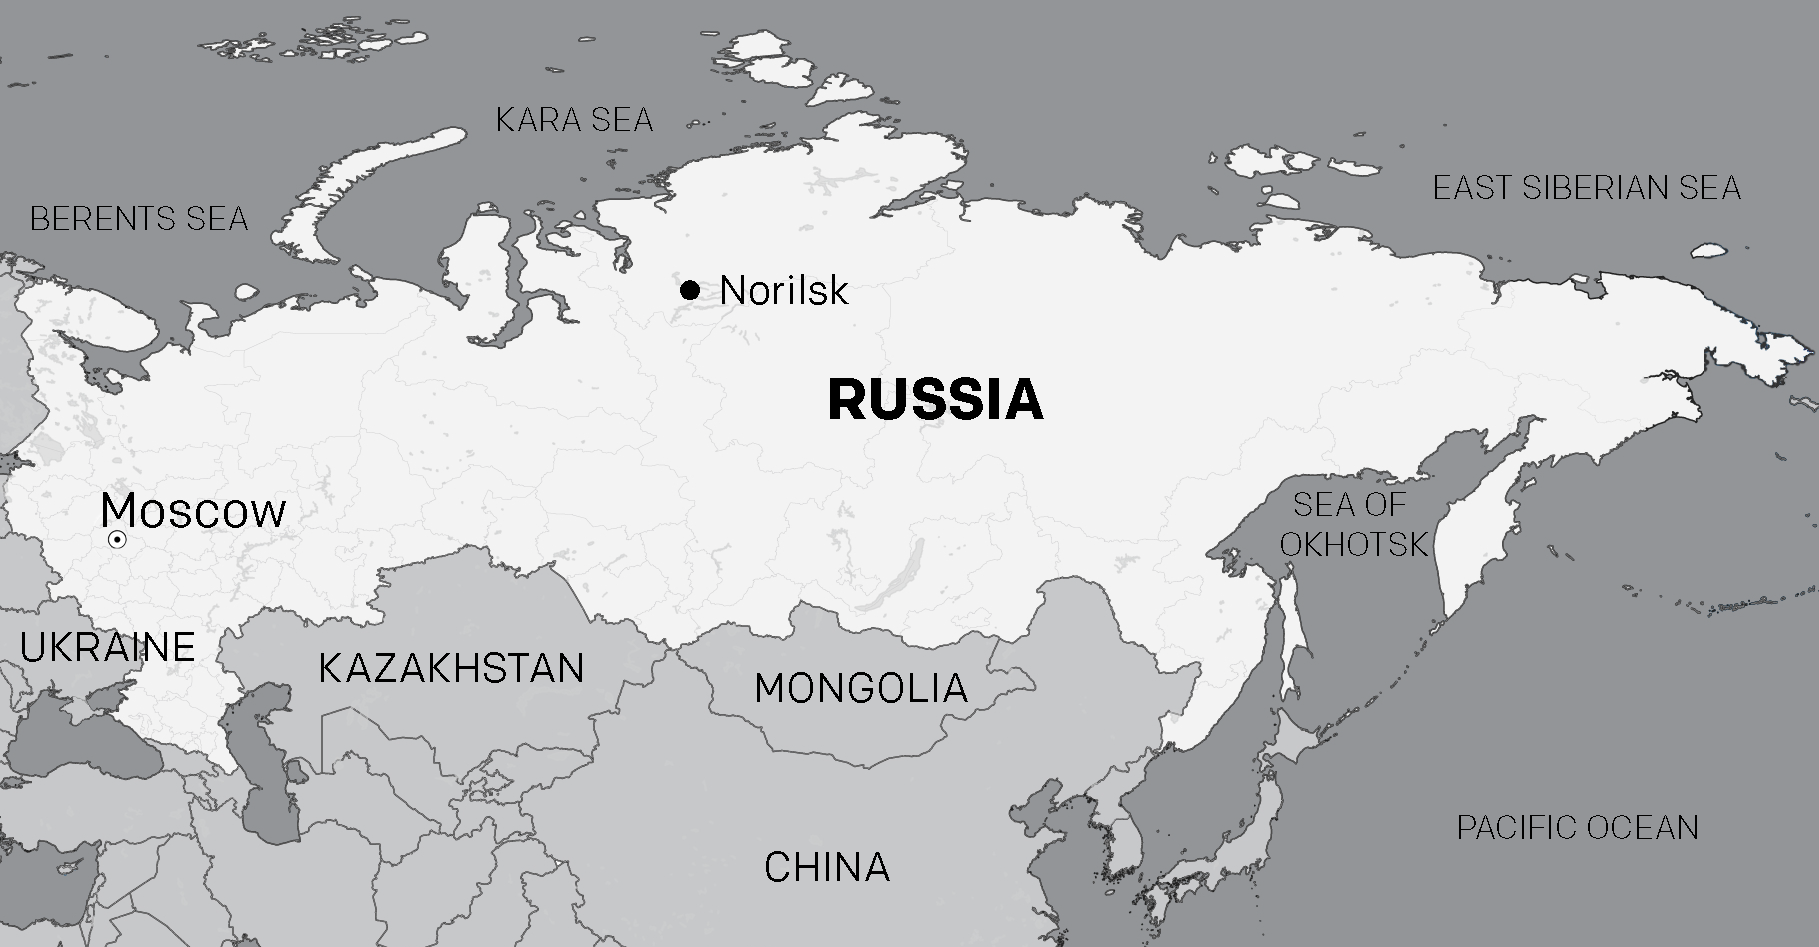 Map of Russia, with Norilsk marked - produced by IWGIA